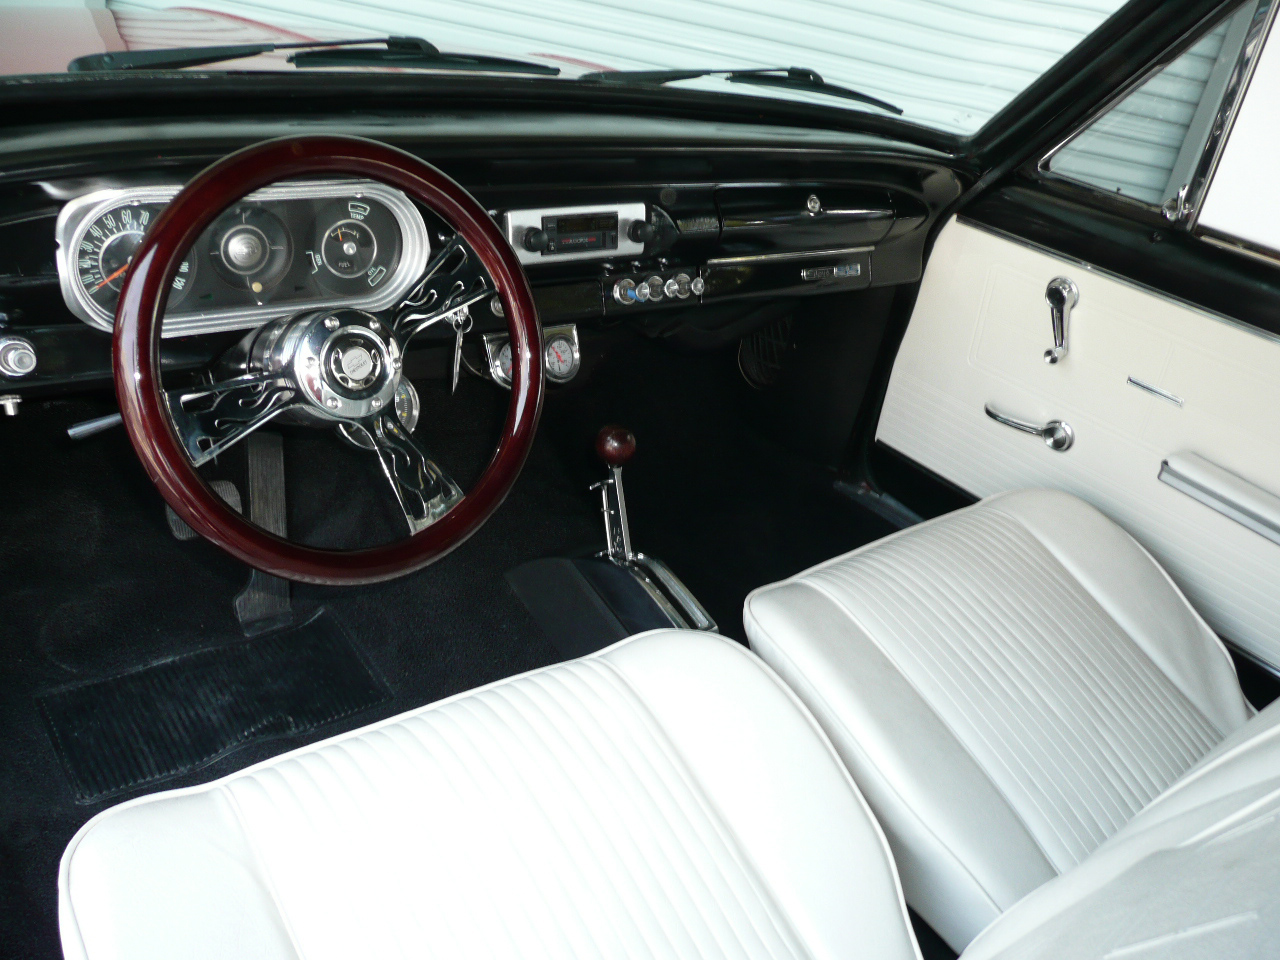 1963 CHEVROLET NOVA SS CUSTOM 2 DOOR HARDTOP - Interior - 80989